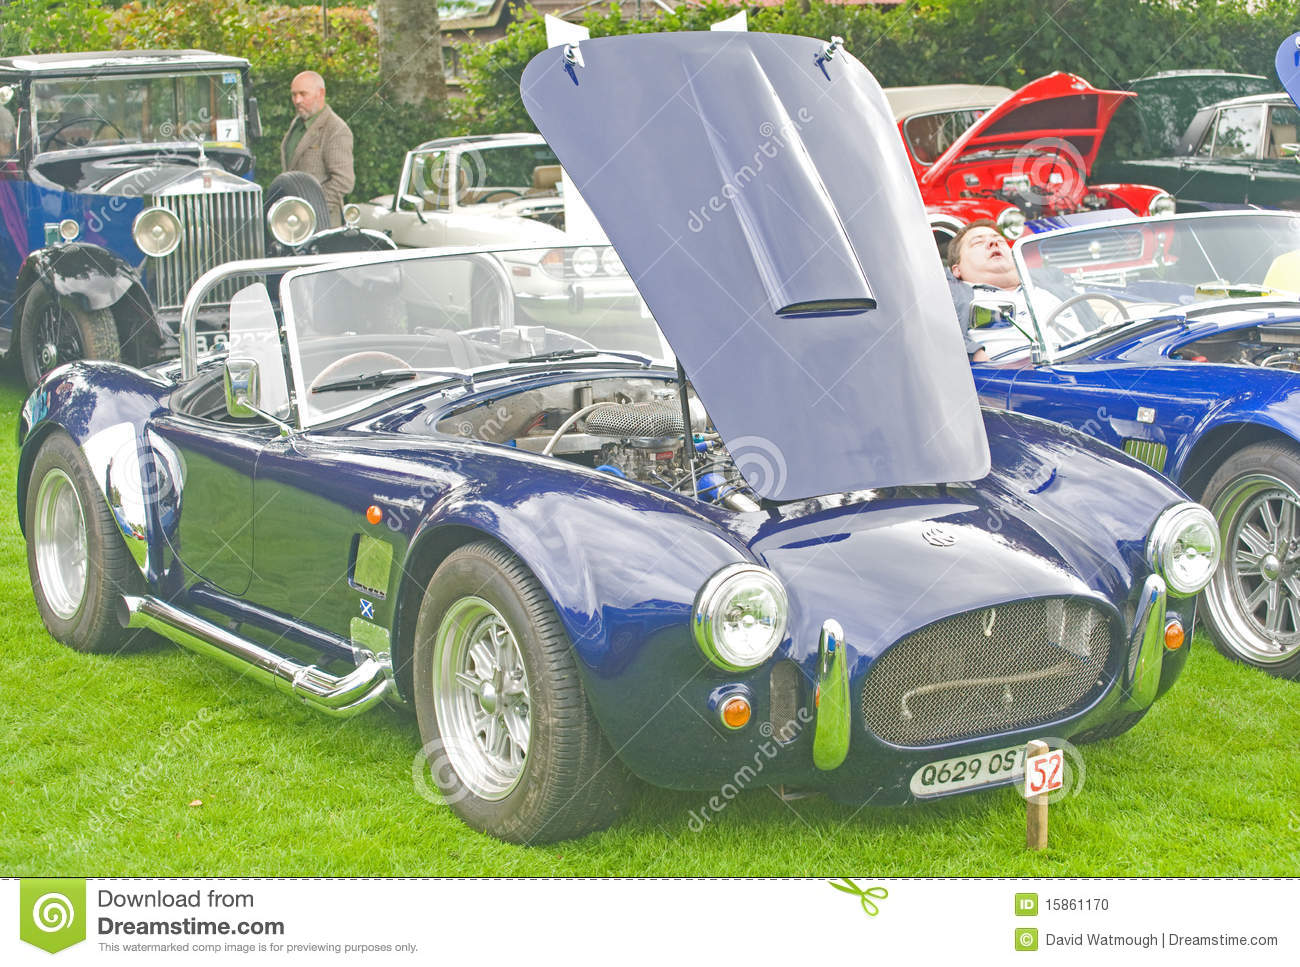 AC Cobra kit car.